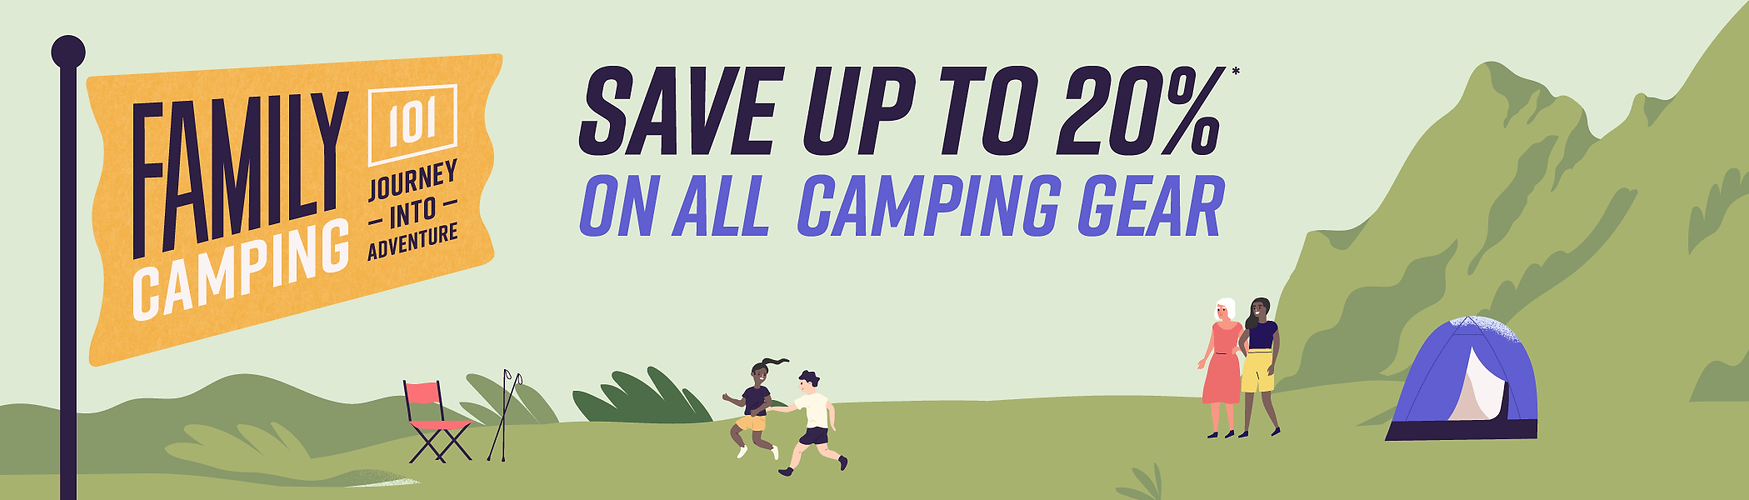 fam_camping_2100x600.png